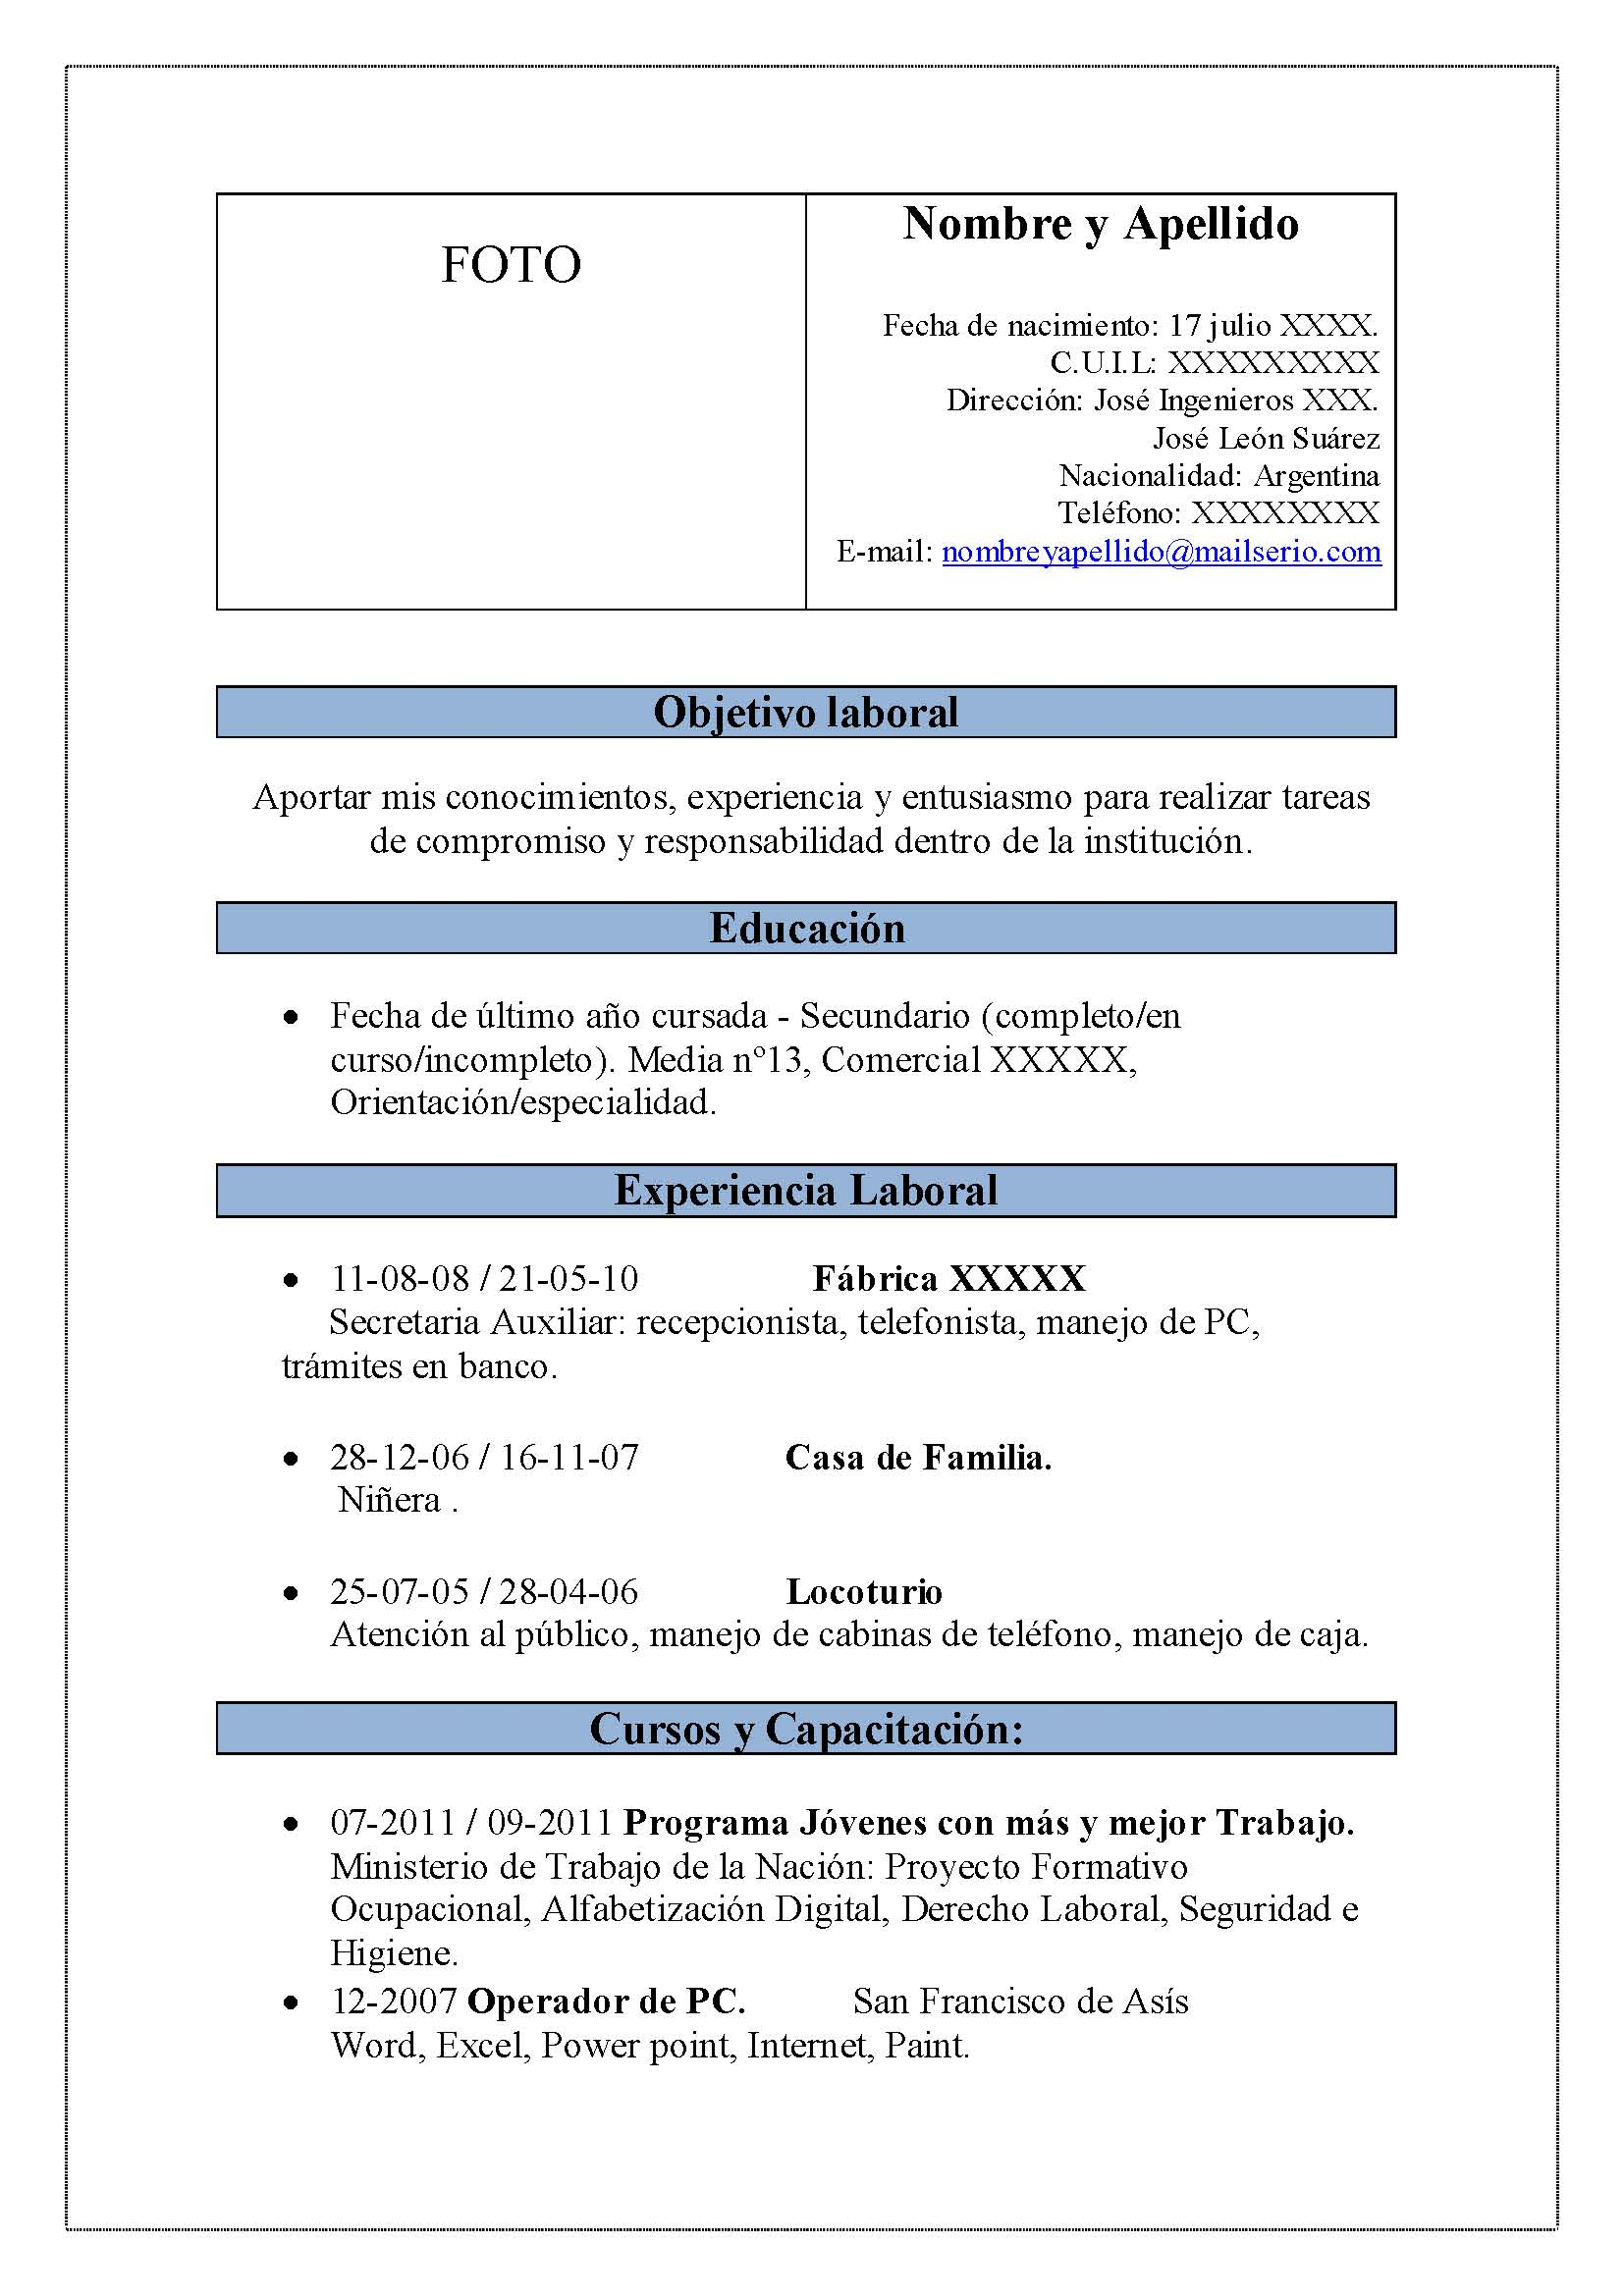 Ejemplo De Curriculum Vitae  Ejemplos De. Cover Letter For Resume Jobstreet. Resume Cover Letter Reference Sample. Cover Letter For Mechanical Engineer With No Experience. Sample Excuse Letter For Athletes. Letter Of Resignation Upon Retirement. Resume Cover Letter Examples Engineering. Cover Letter Template On Mac Word. Resume Summary Examples Data Analyst